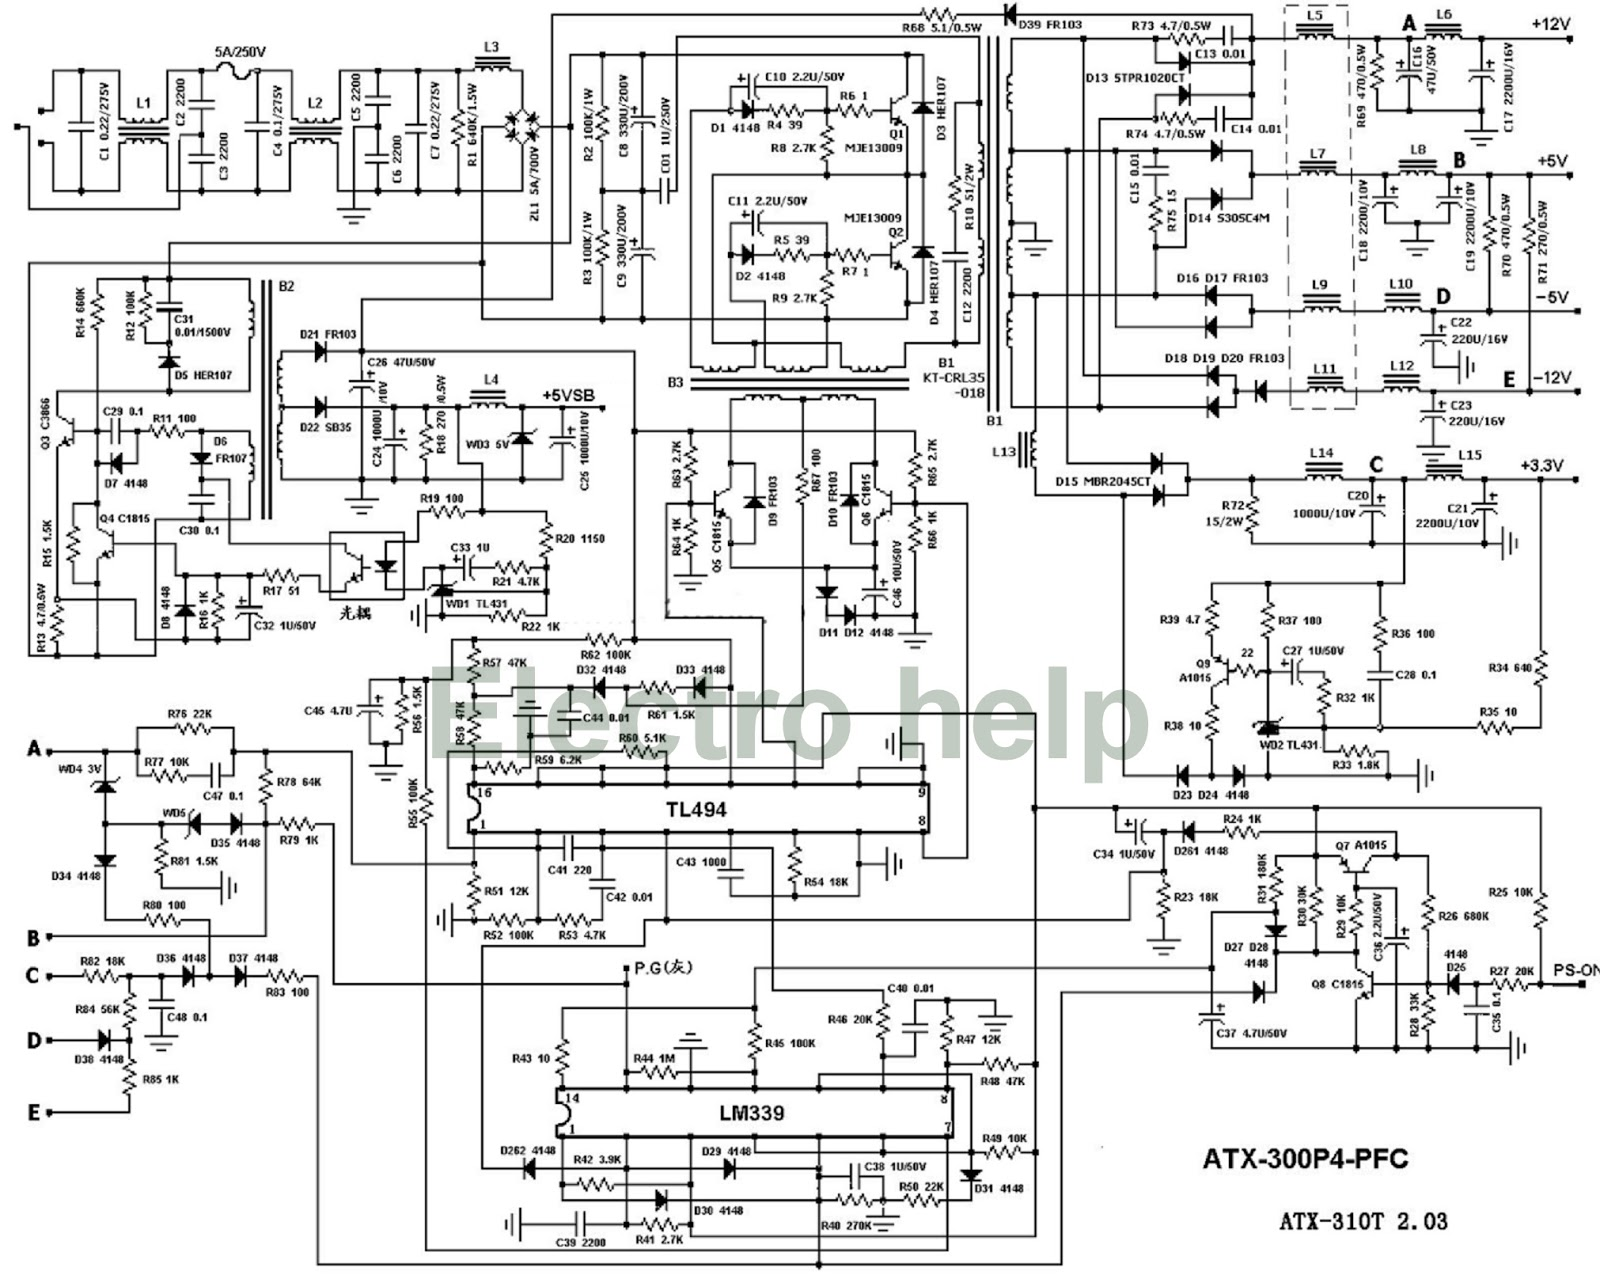 atx atx power supply desktop computers atx300p4 schematic computer power supply wiring diagram at fashall.co